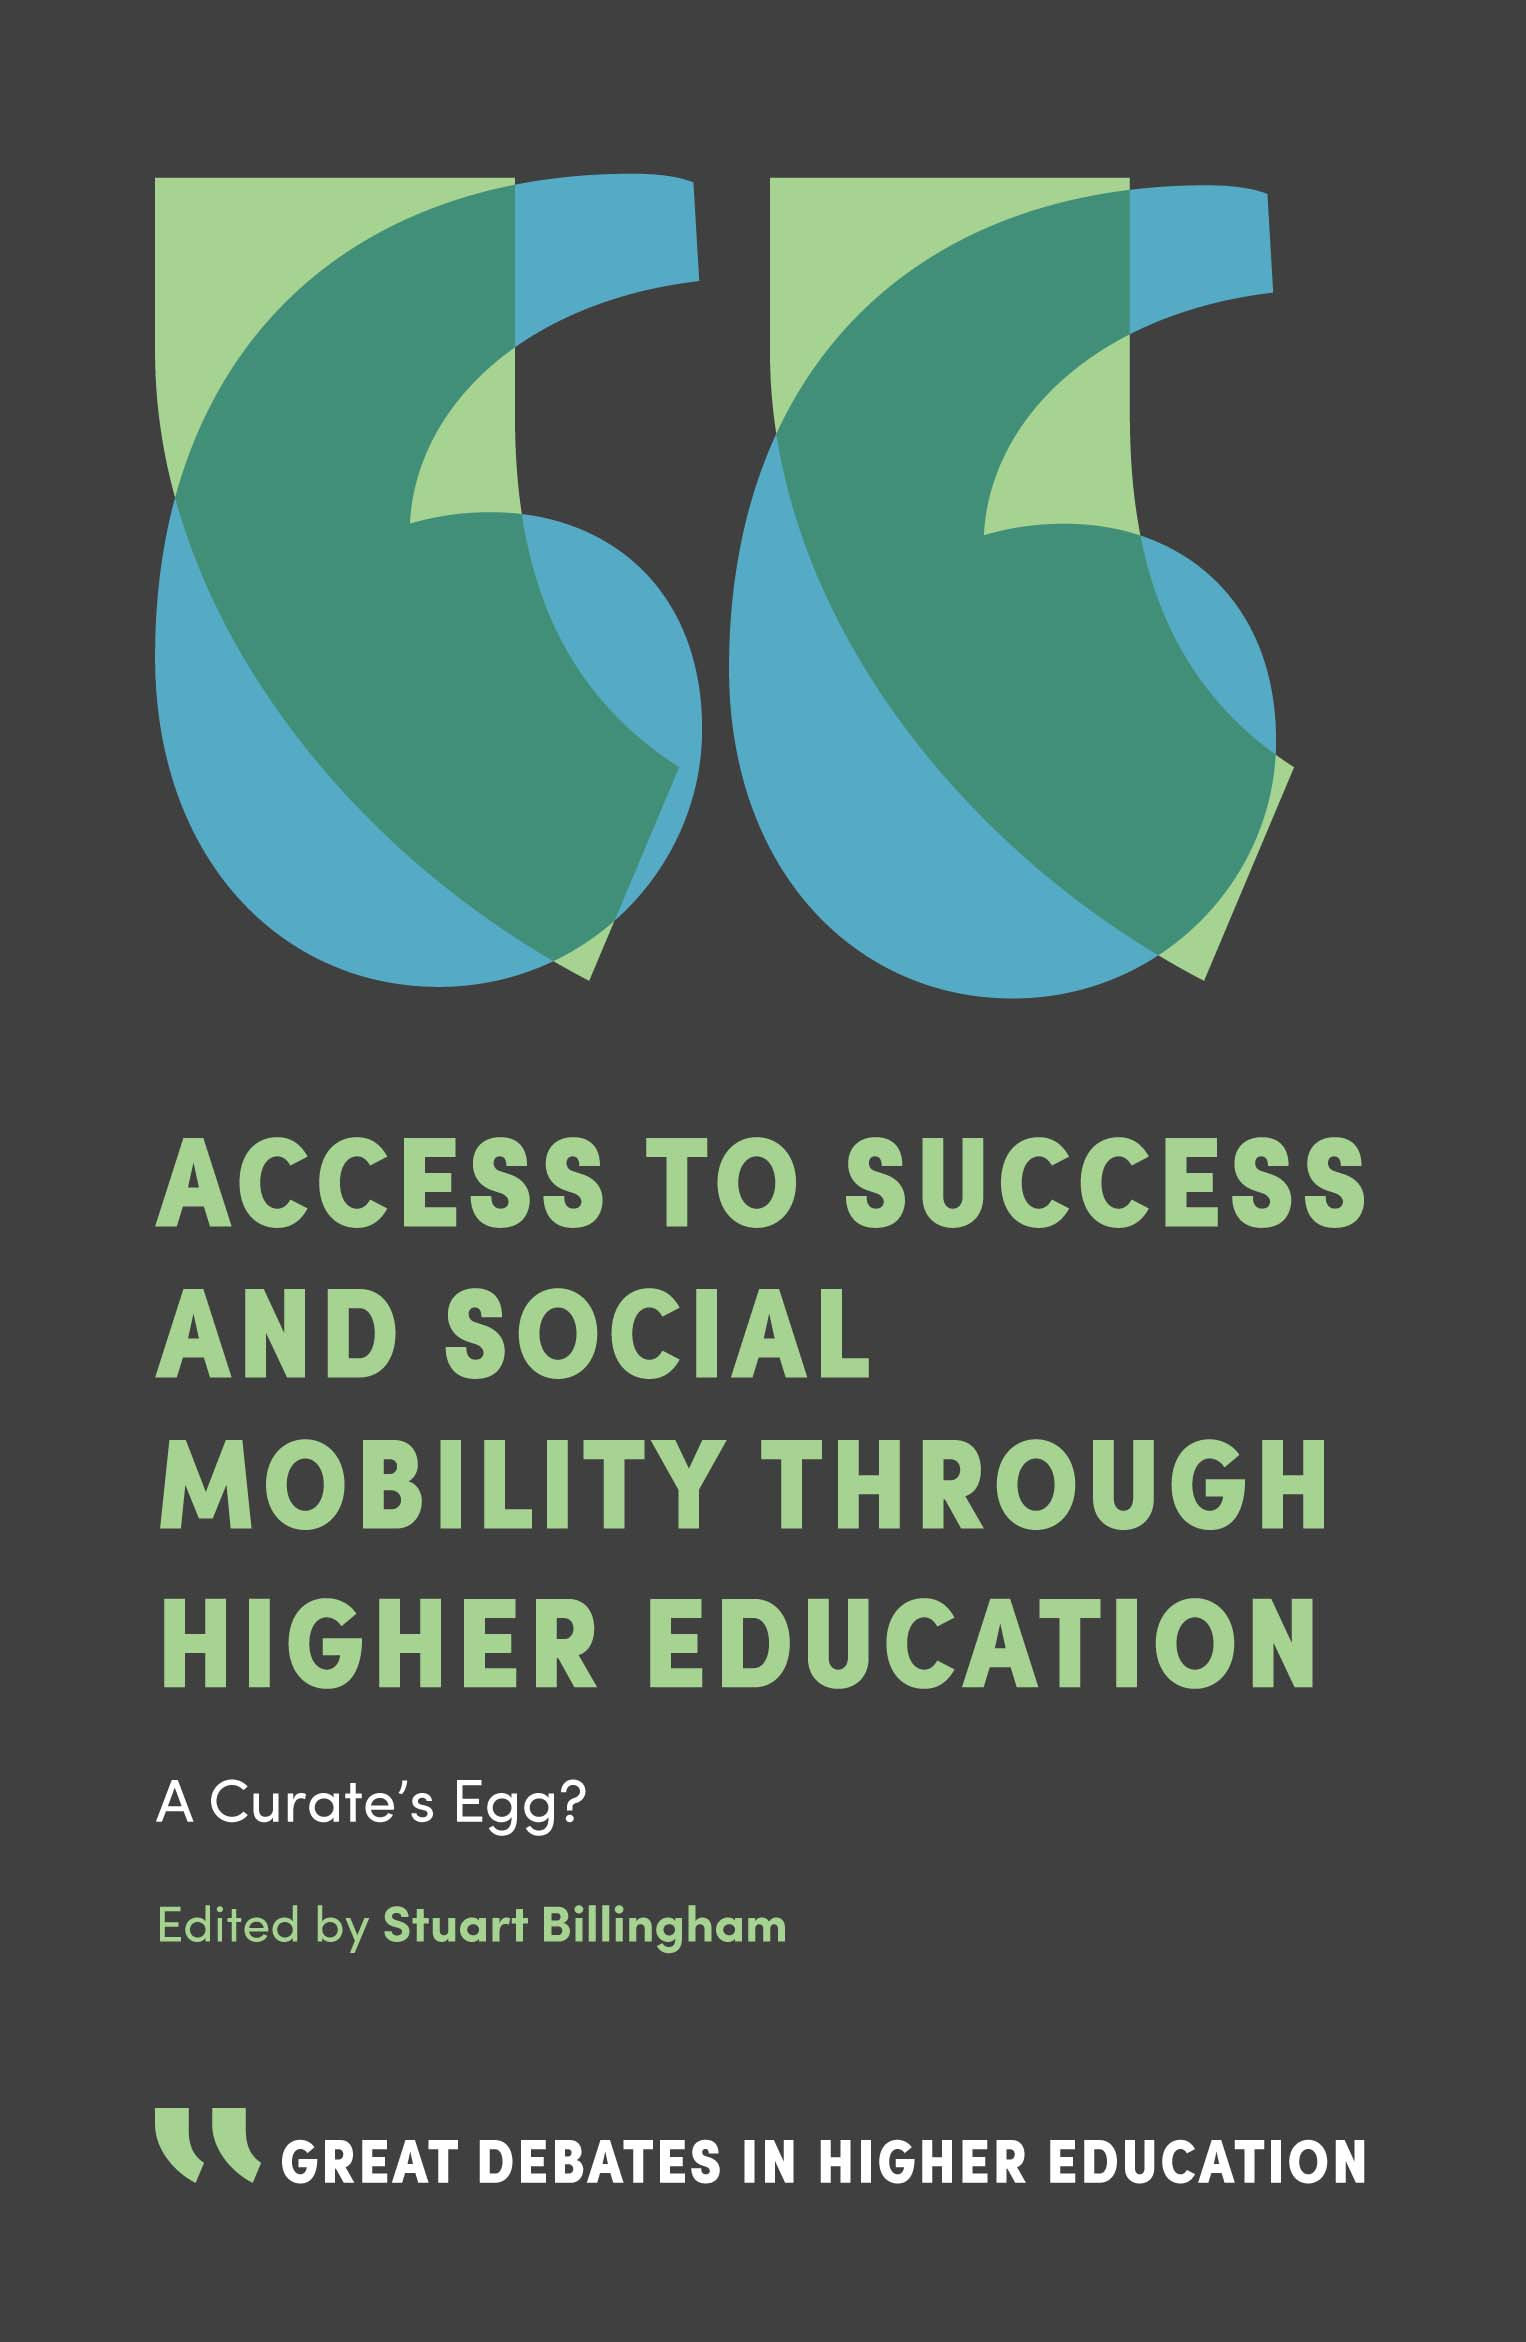 Book cover for Access to Success and Social Mobility through Higher Education:  A Curate's Egg? a book by Stuart  Billingham